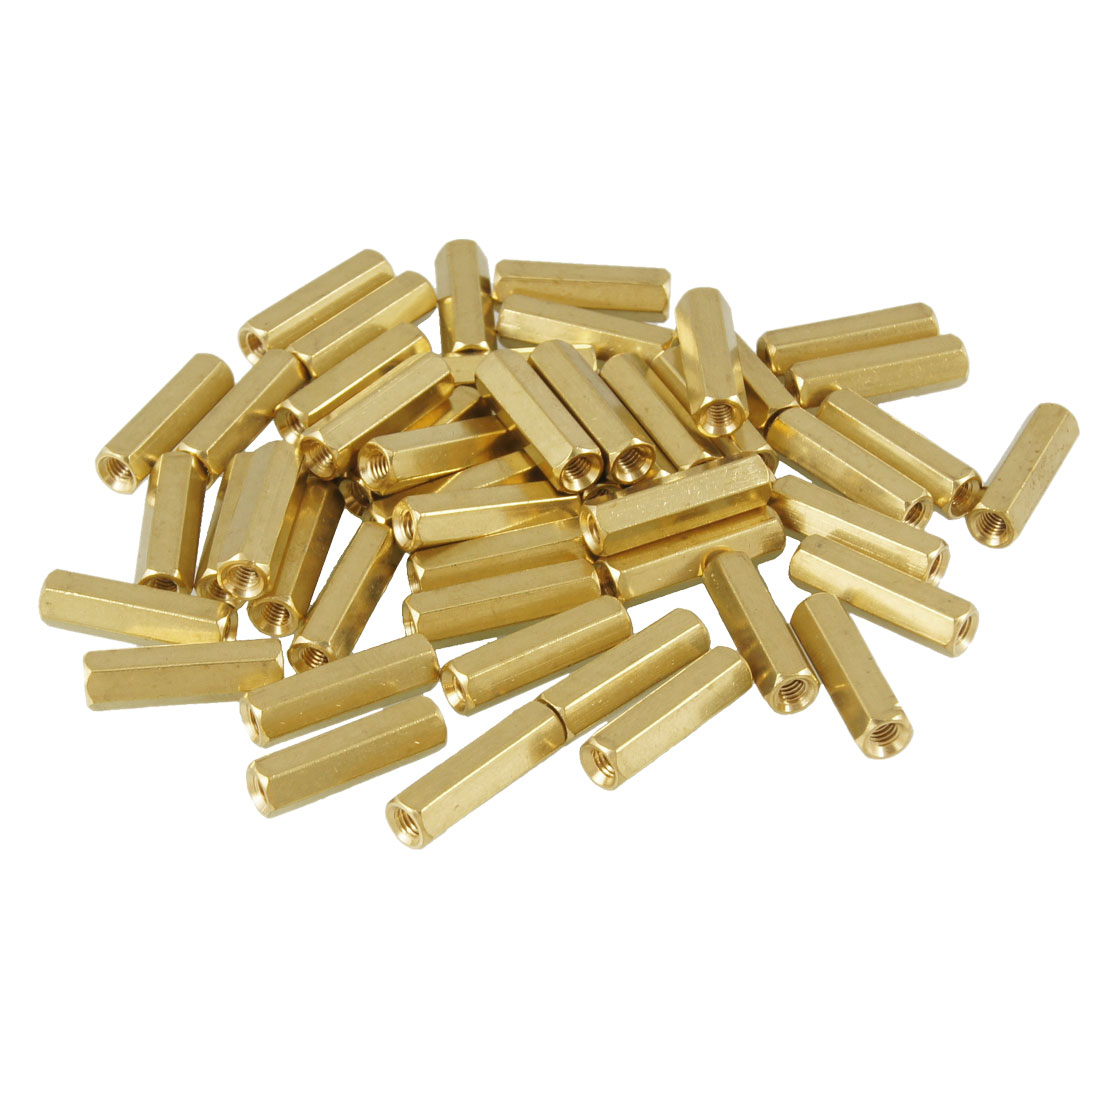 50 Pcs Female Thread Hexagonal PCB Standoff Spacer M3X16mm